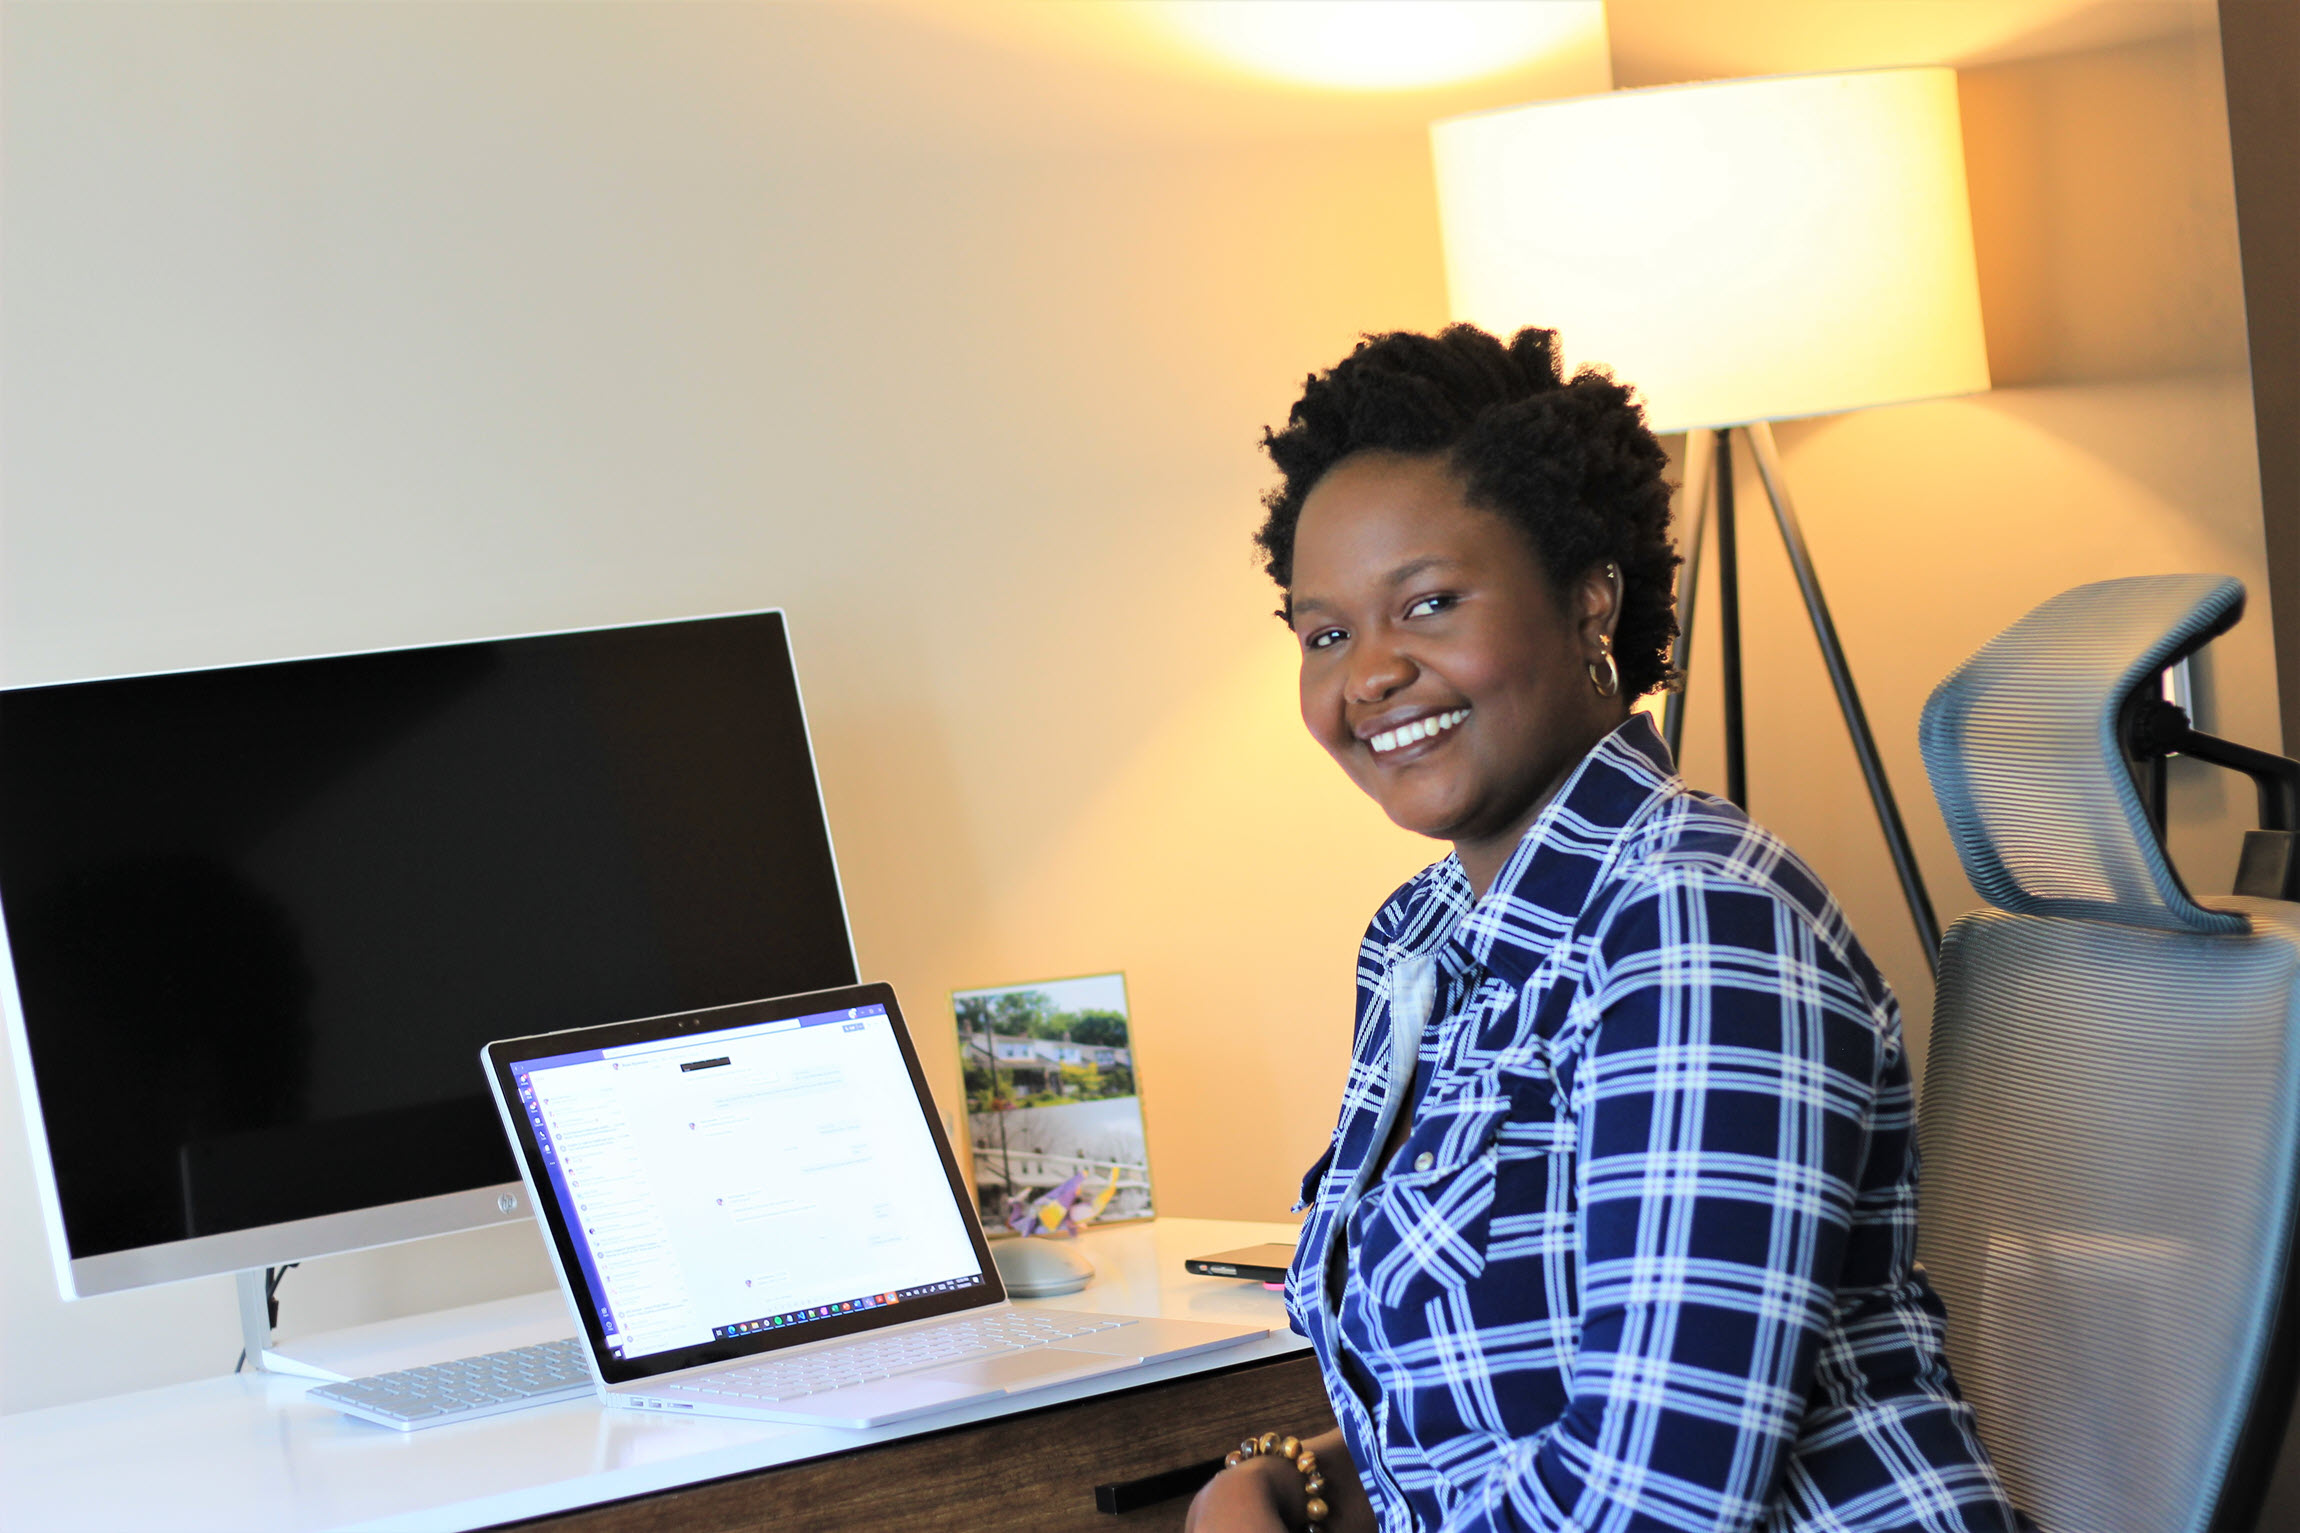 Nyameke sits in front of her laptop and monitor while smiling at the camera.